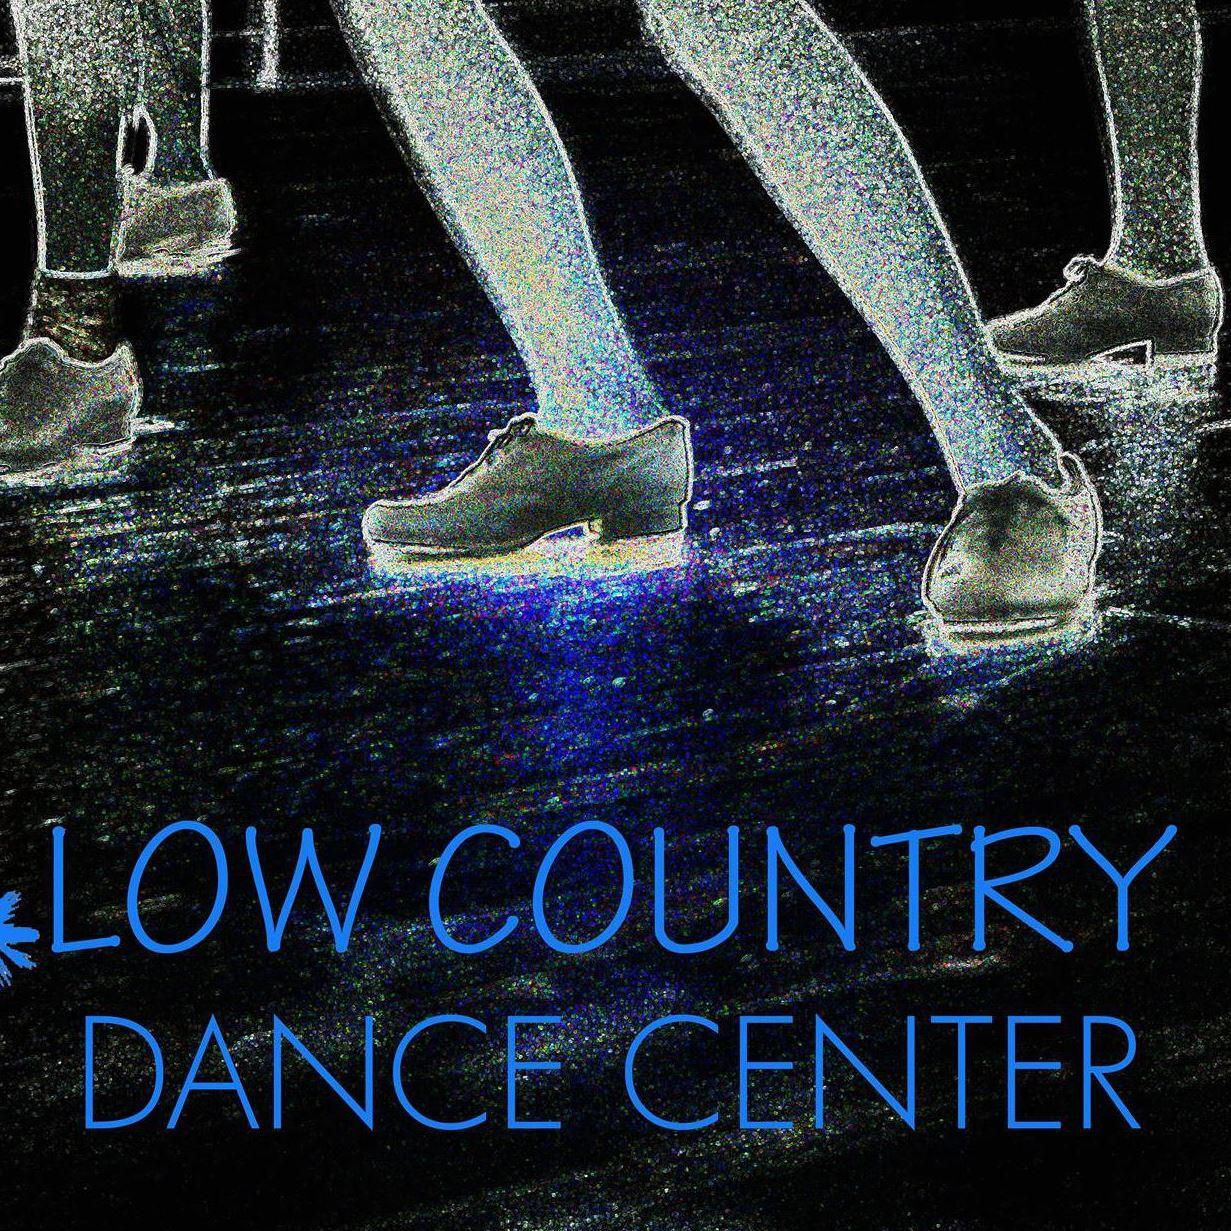 Low Country Dance Center